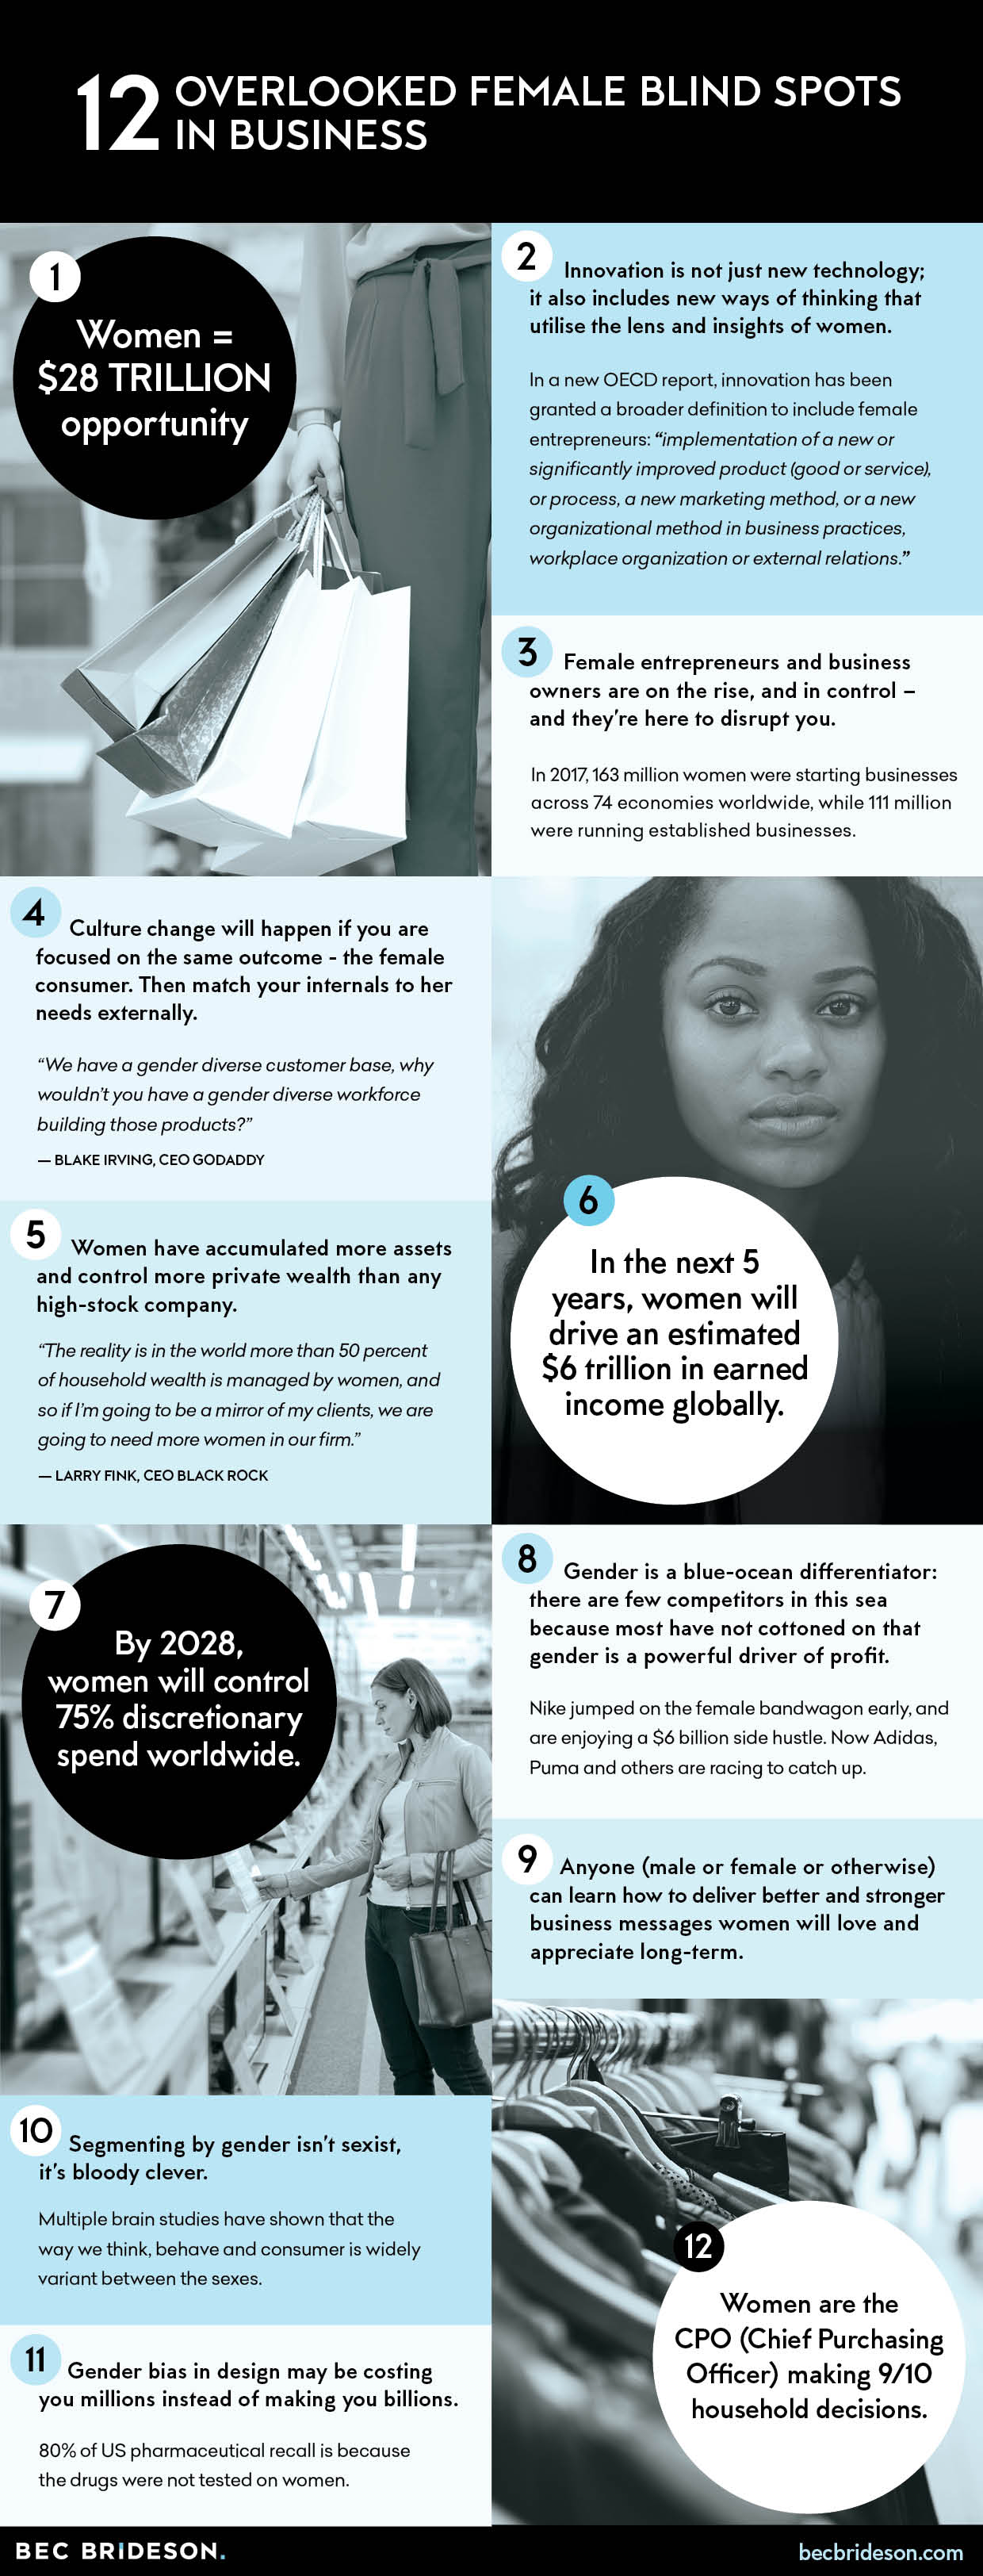 International Women's Day 2018 - 12 Overlooked Female Blindspots in Business Infographic